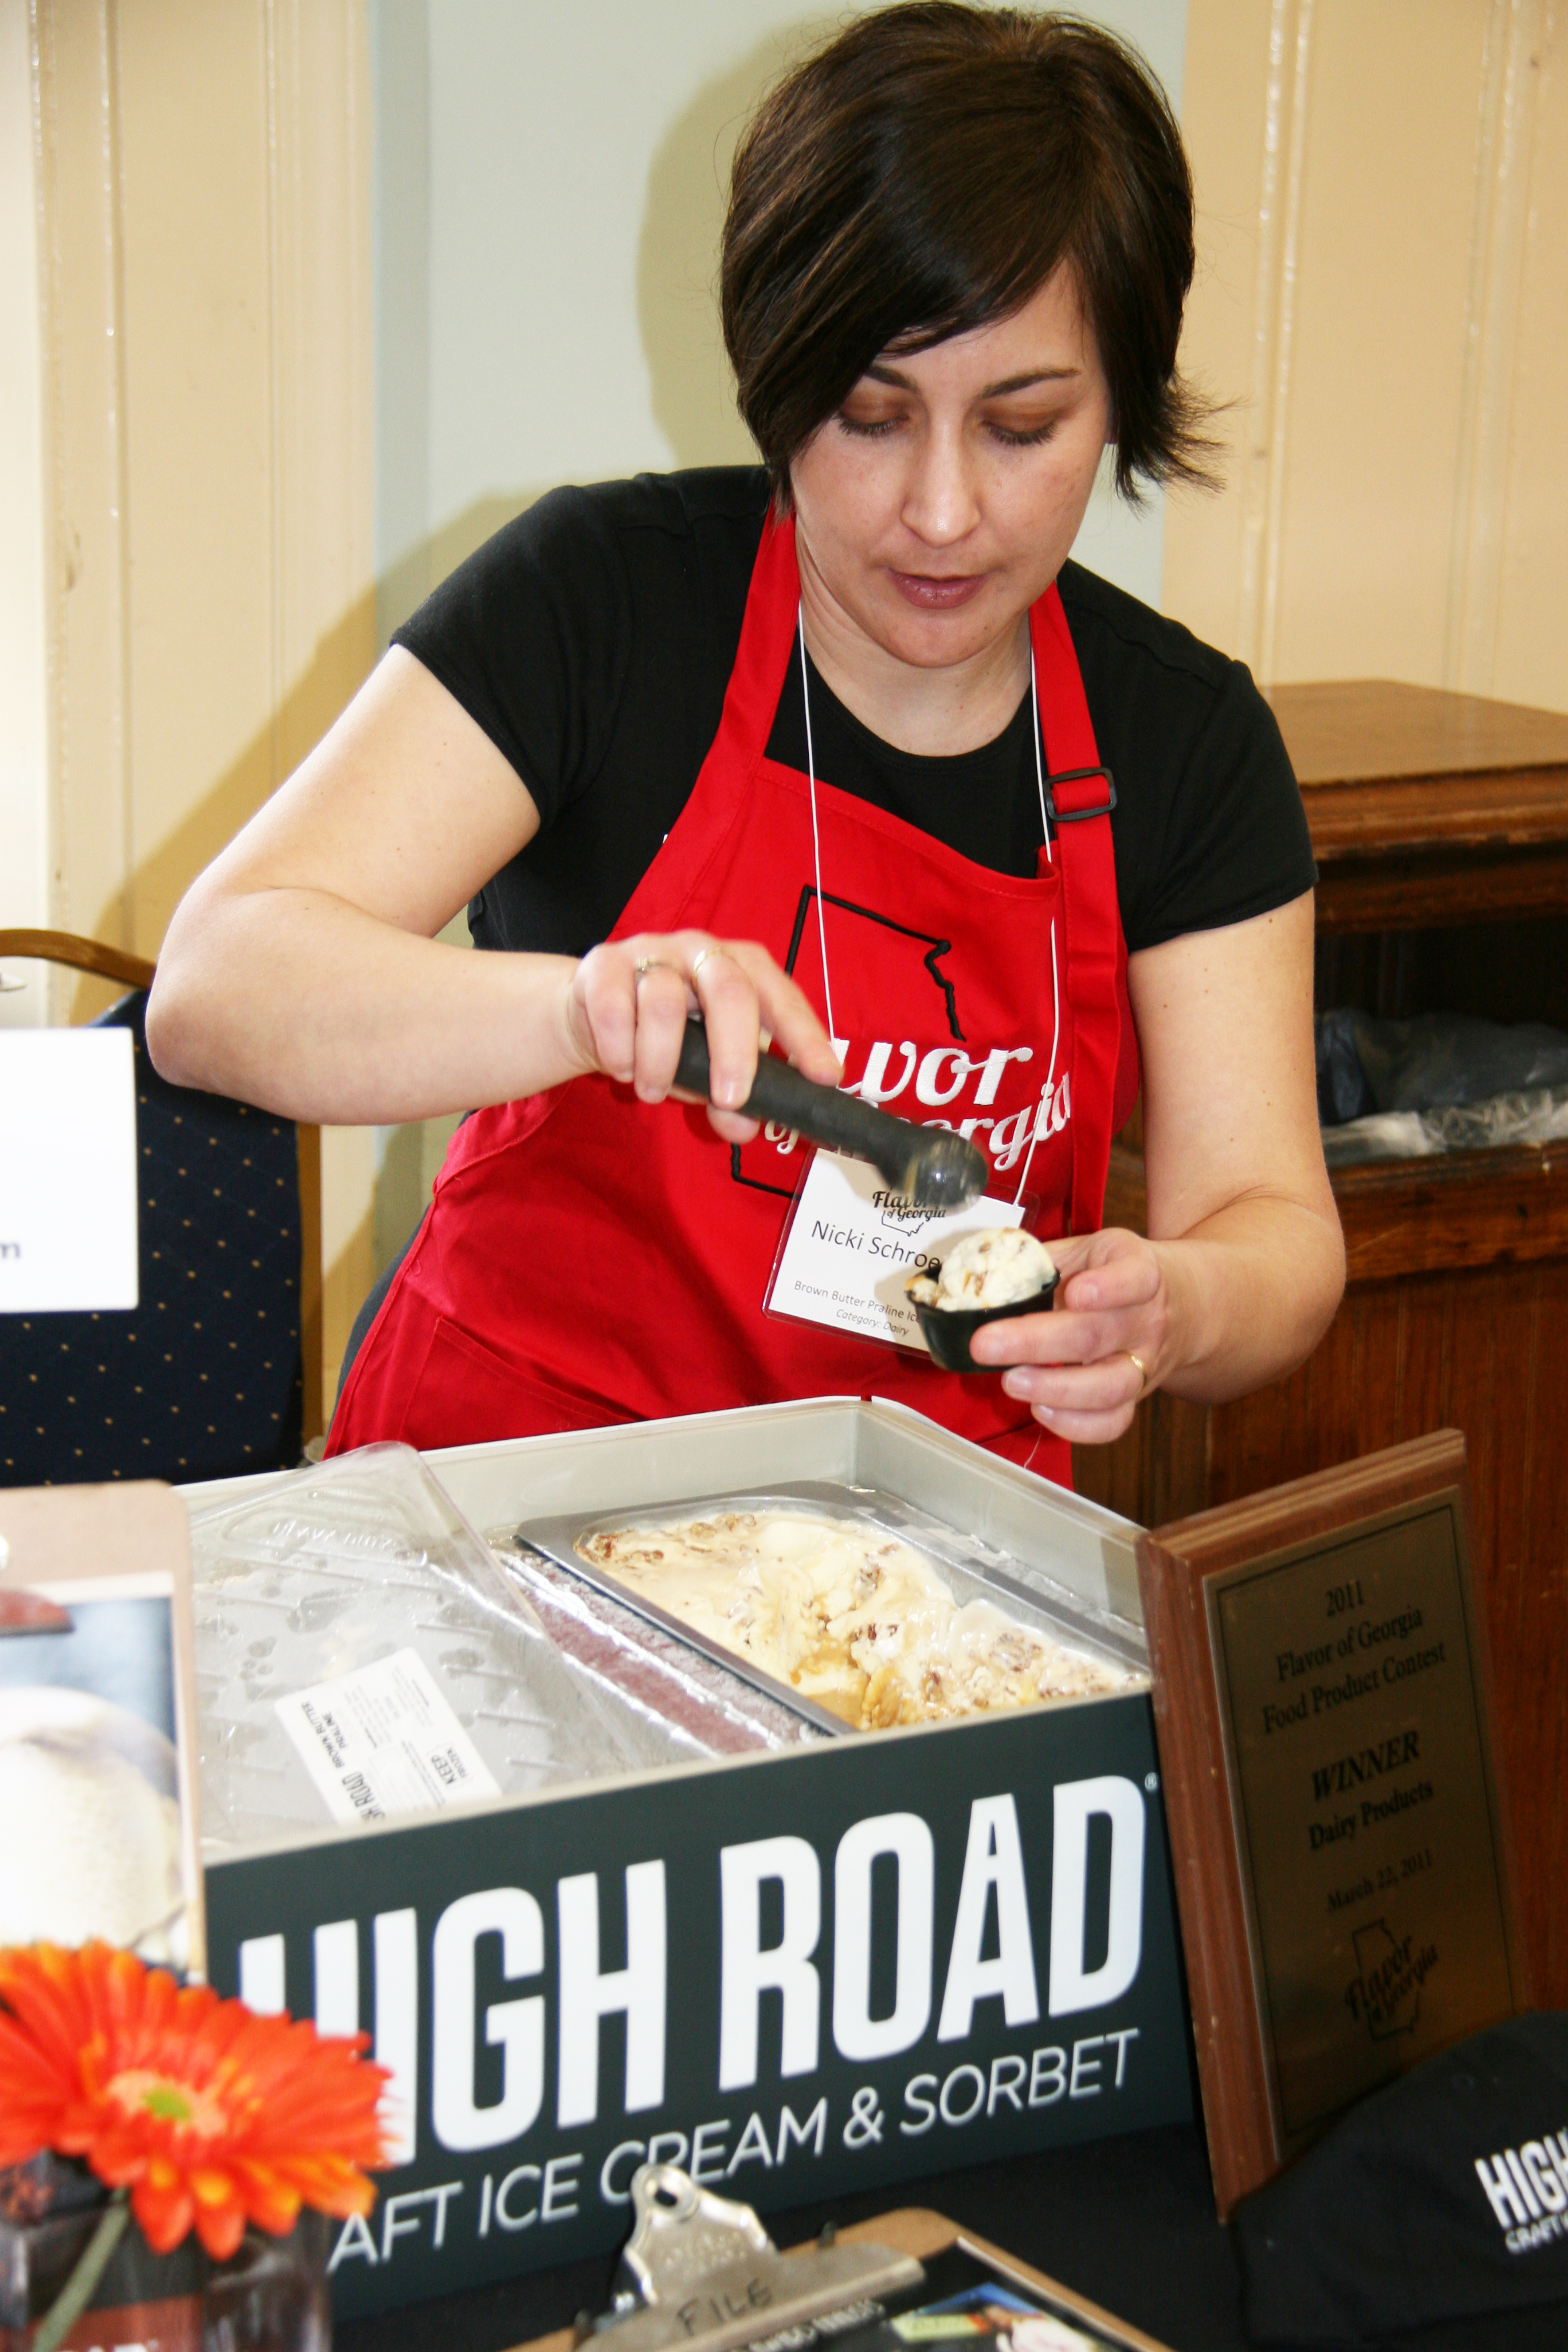 Nicki Schroeder, of High Road Craft Ice Cream in Atlanta, scoops a serving of ice cream for the judges at the 2012 Flavor of Georgia Food Product Contest.